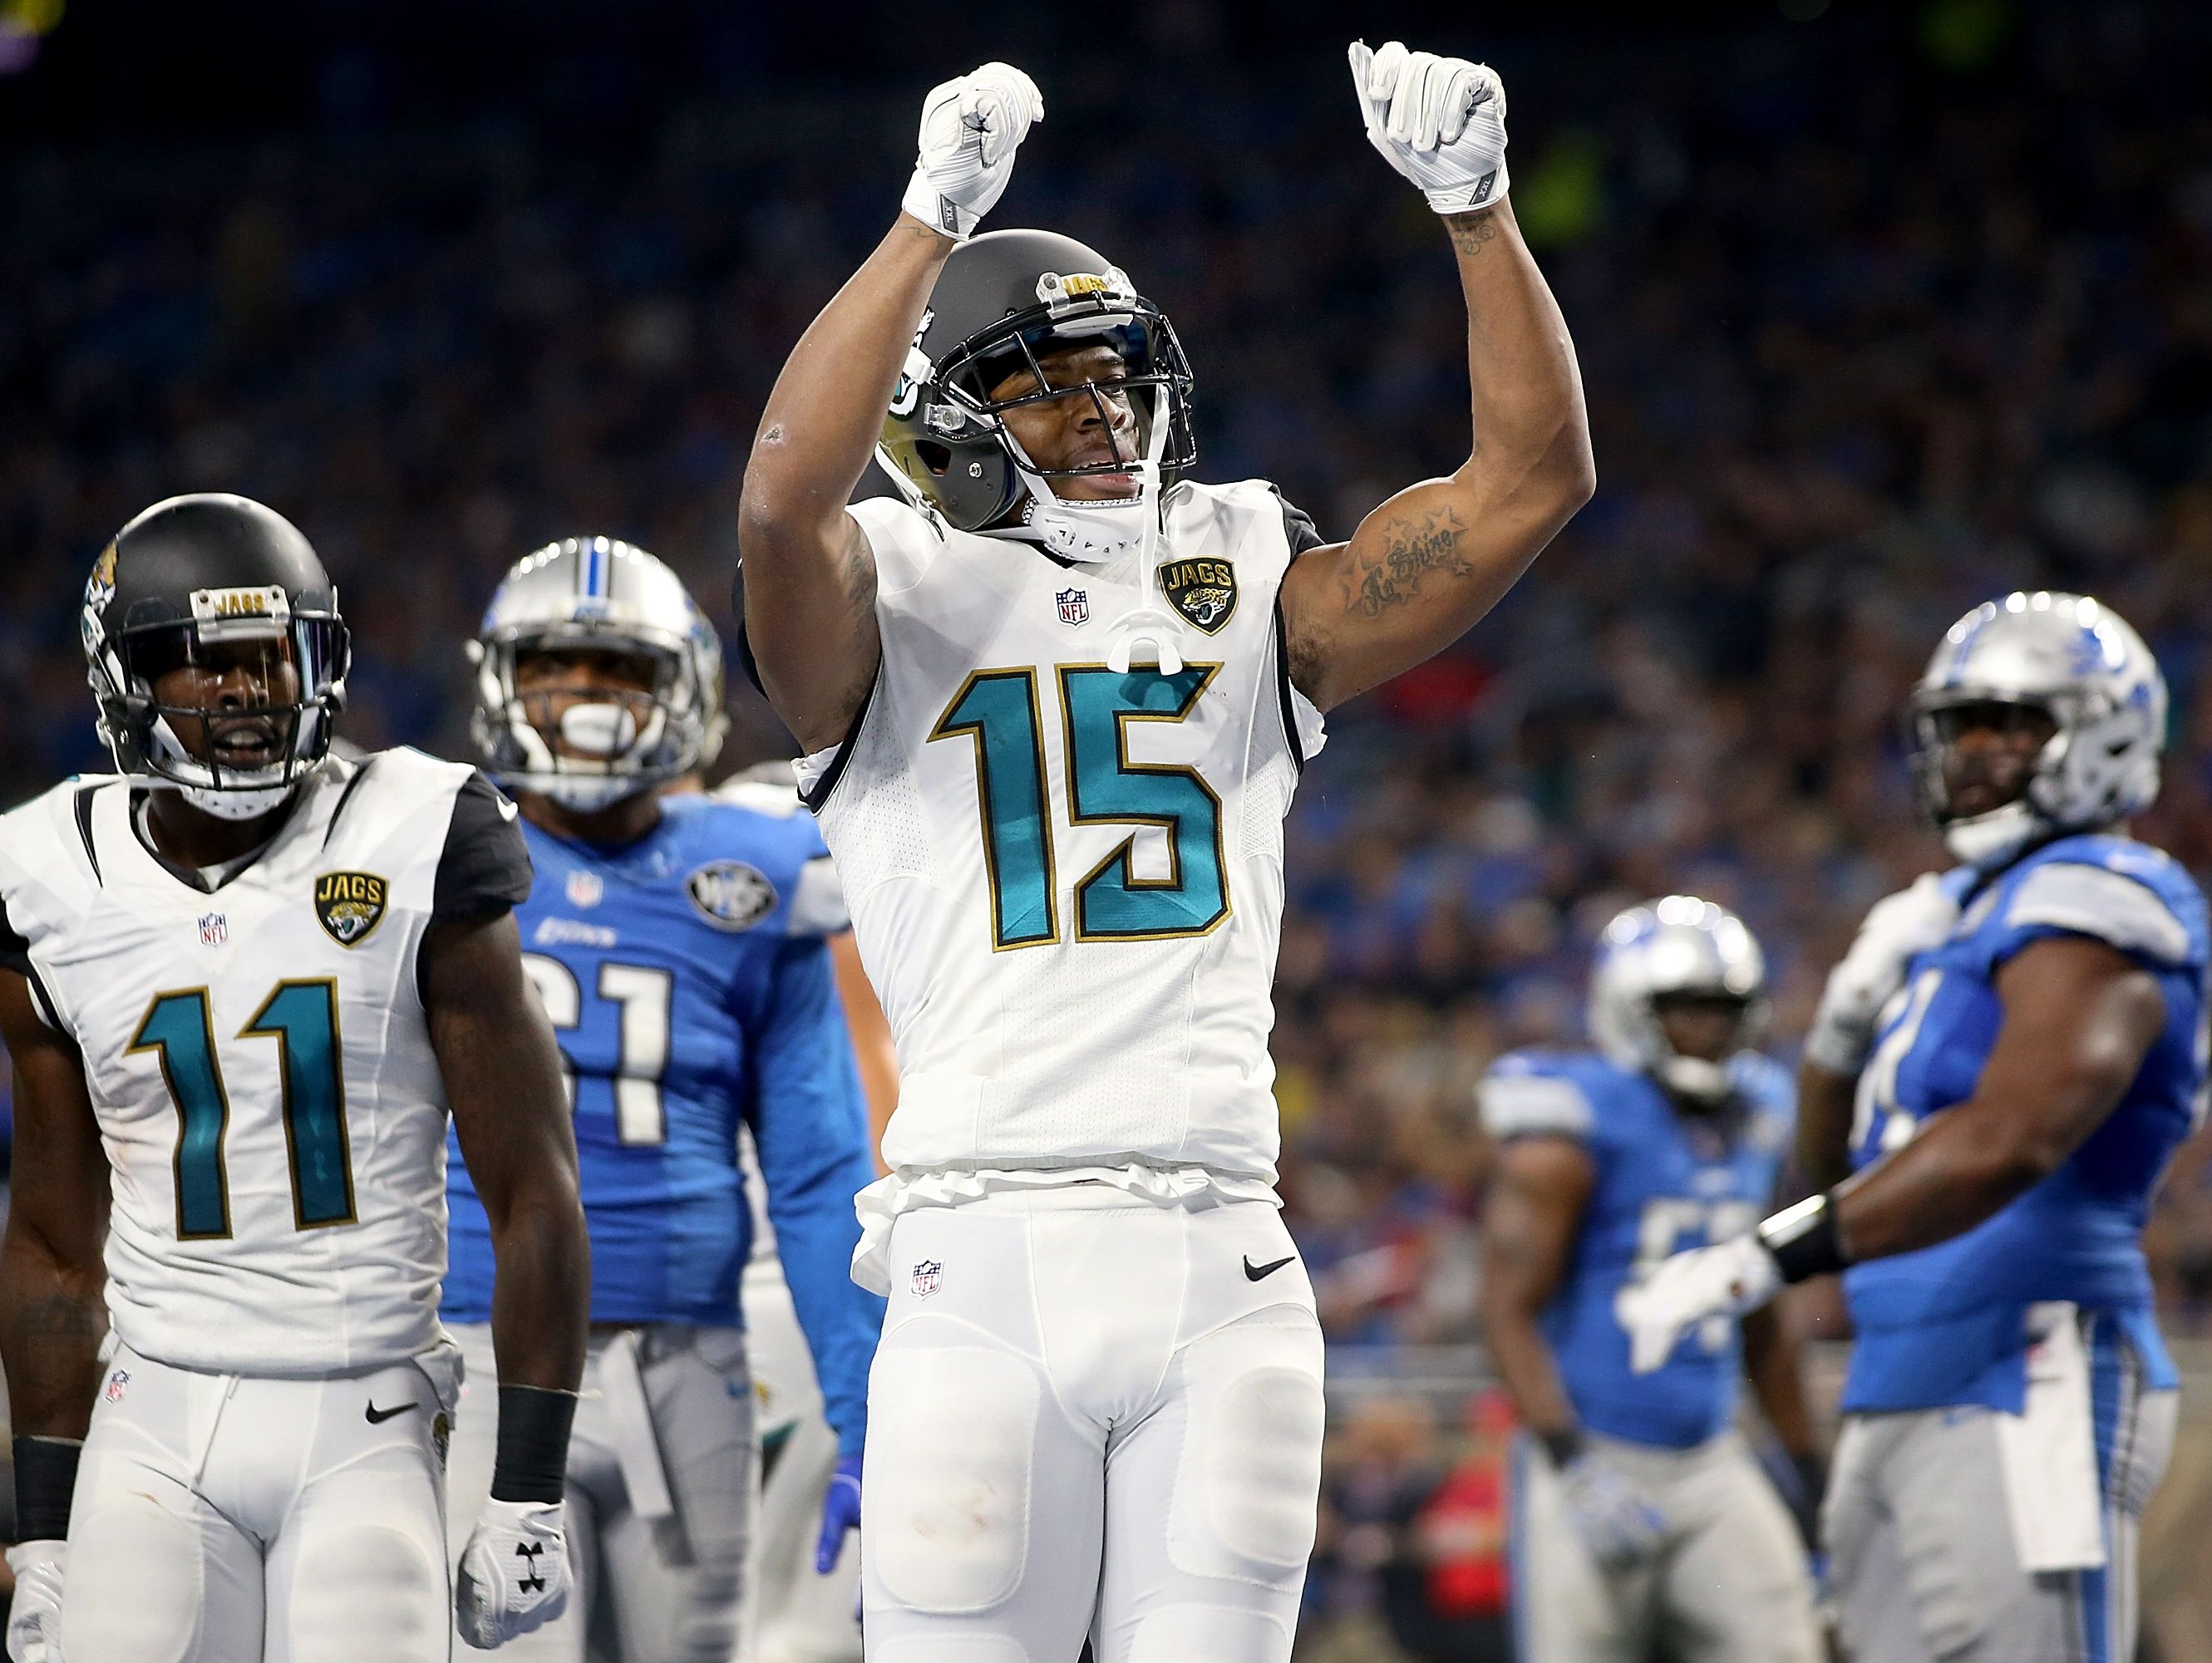 Jaguars wide receiver Allen Robinson celebrates his second-quarter touchdown Sunday at Ford Field.